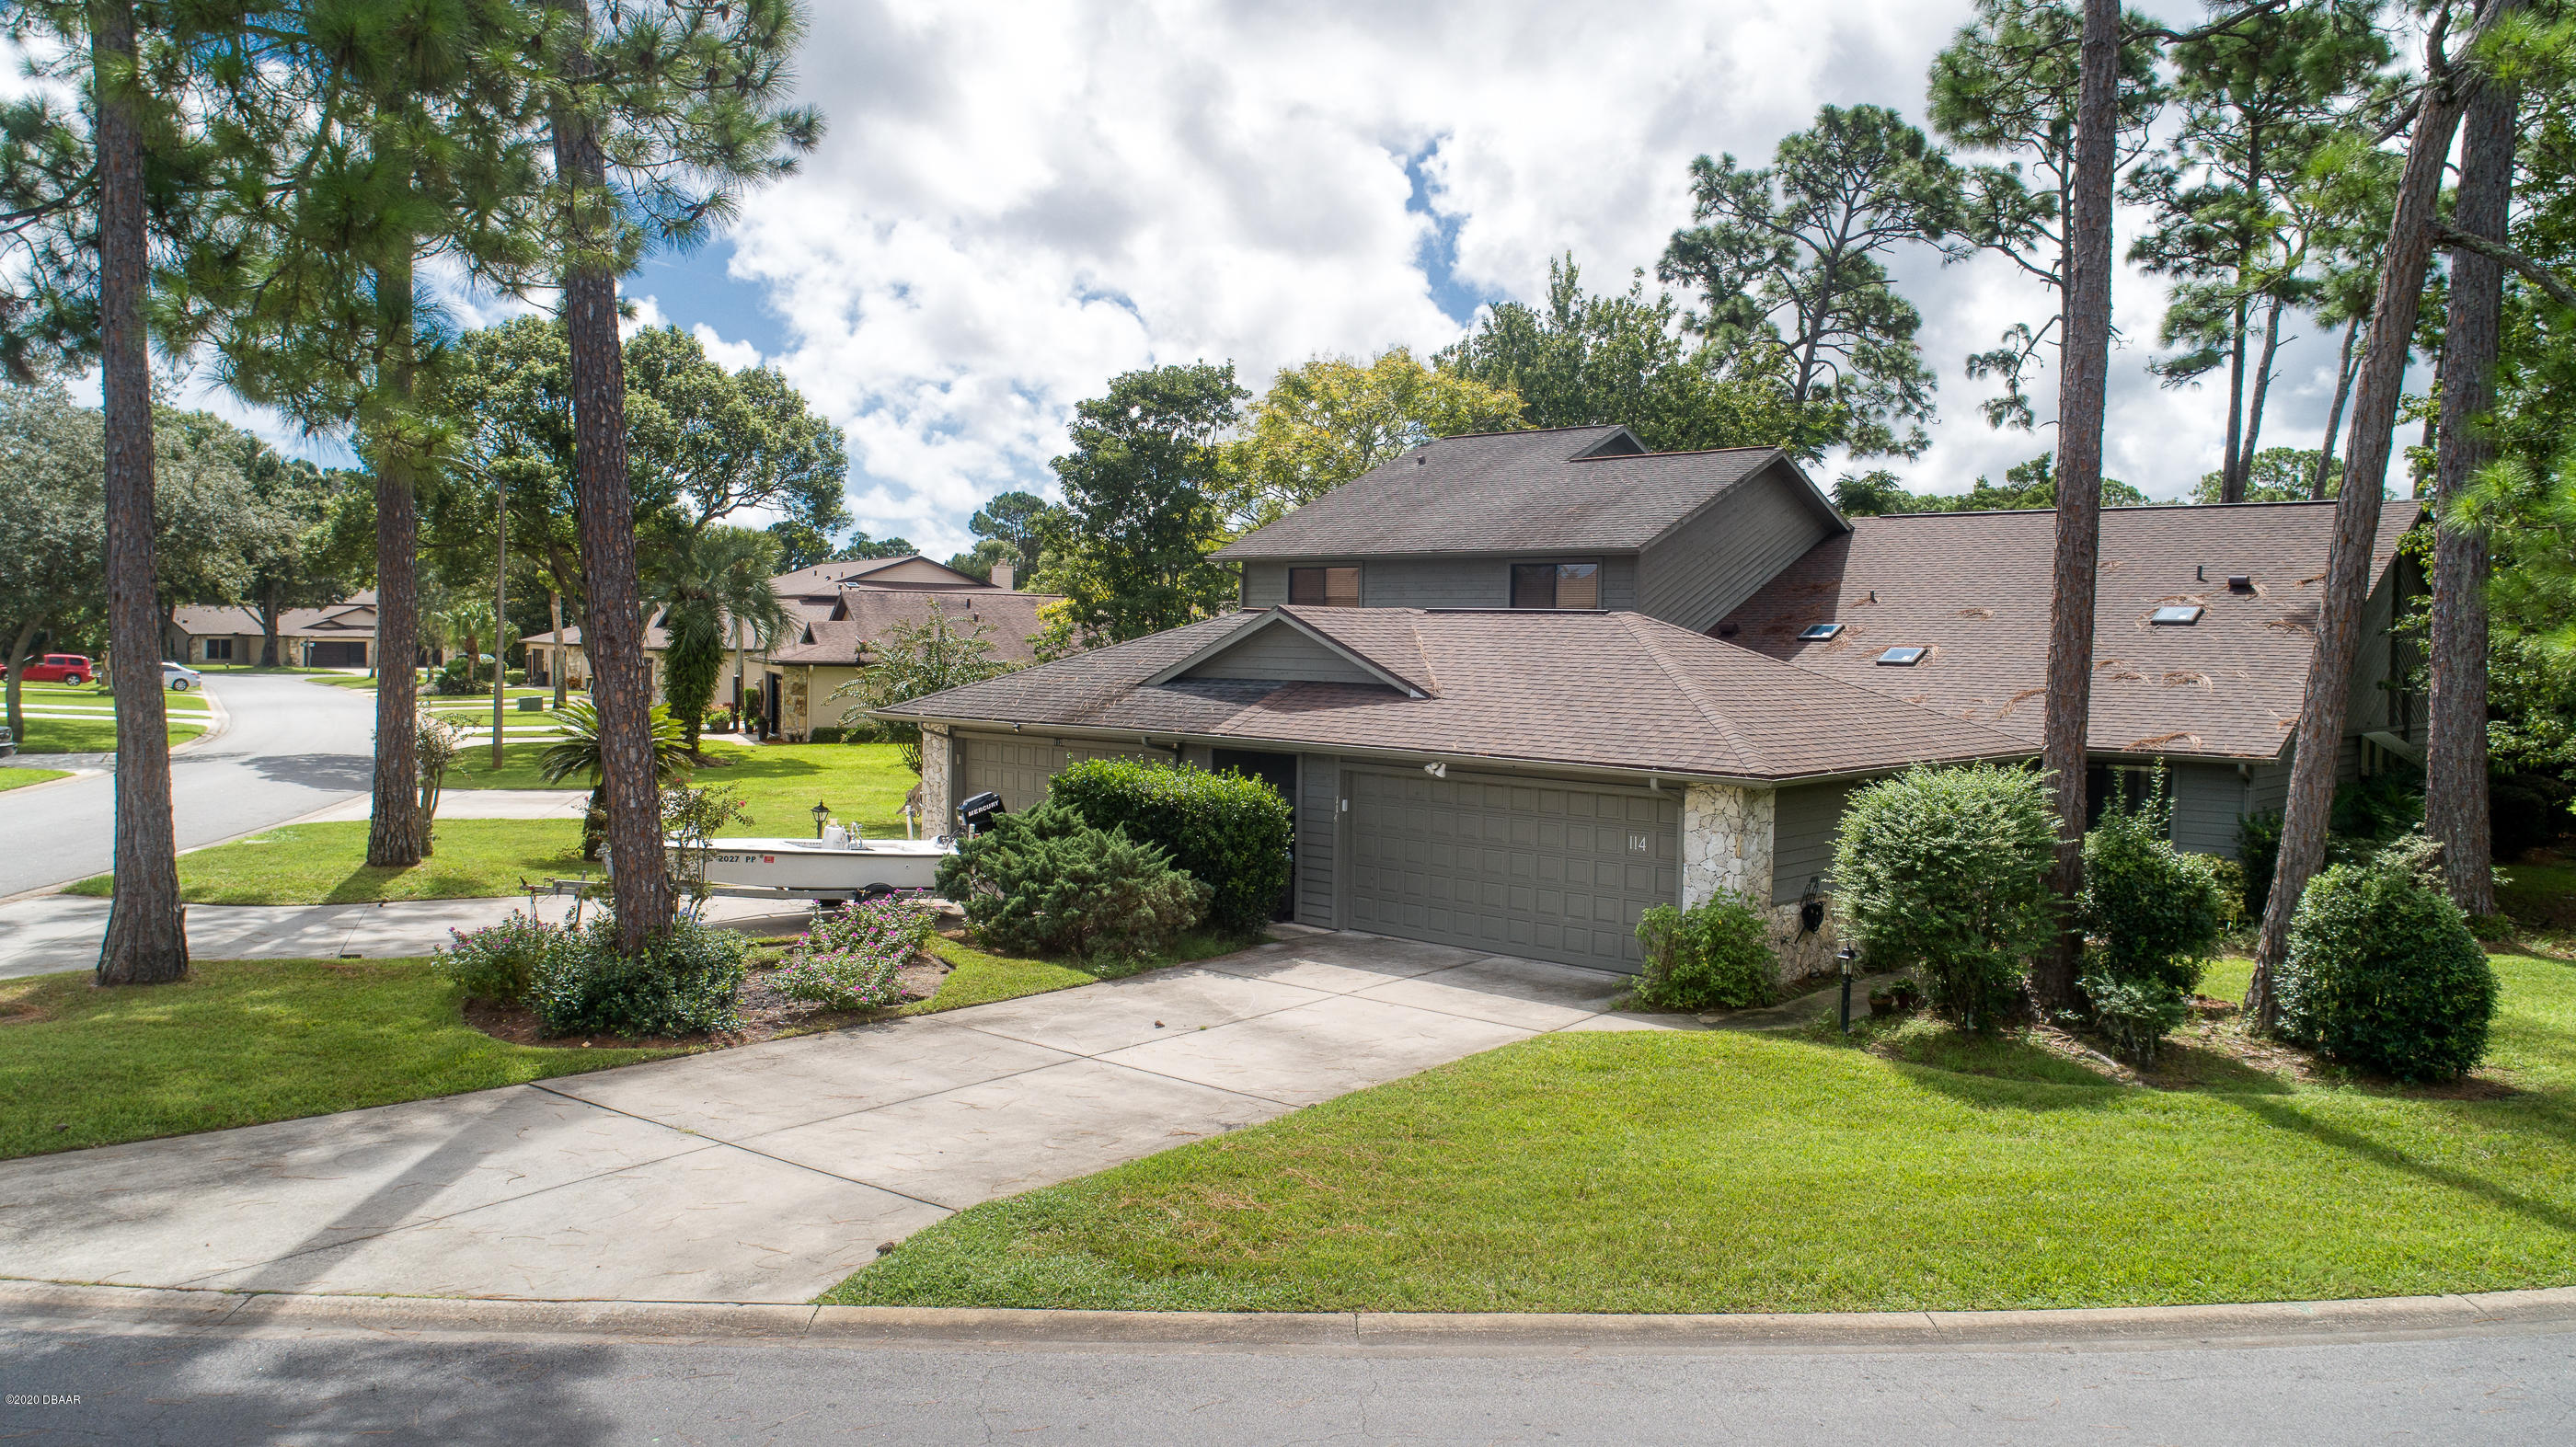 Details for 114 Deer Lake Circle, Ormond Beach, FL 32174